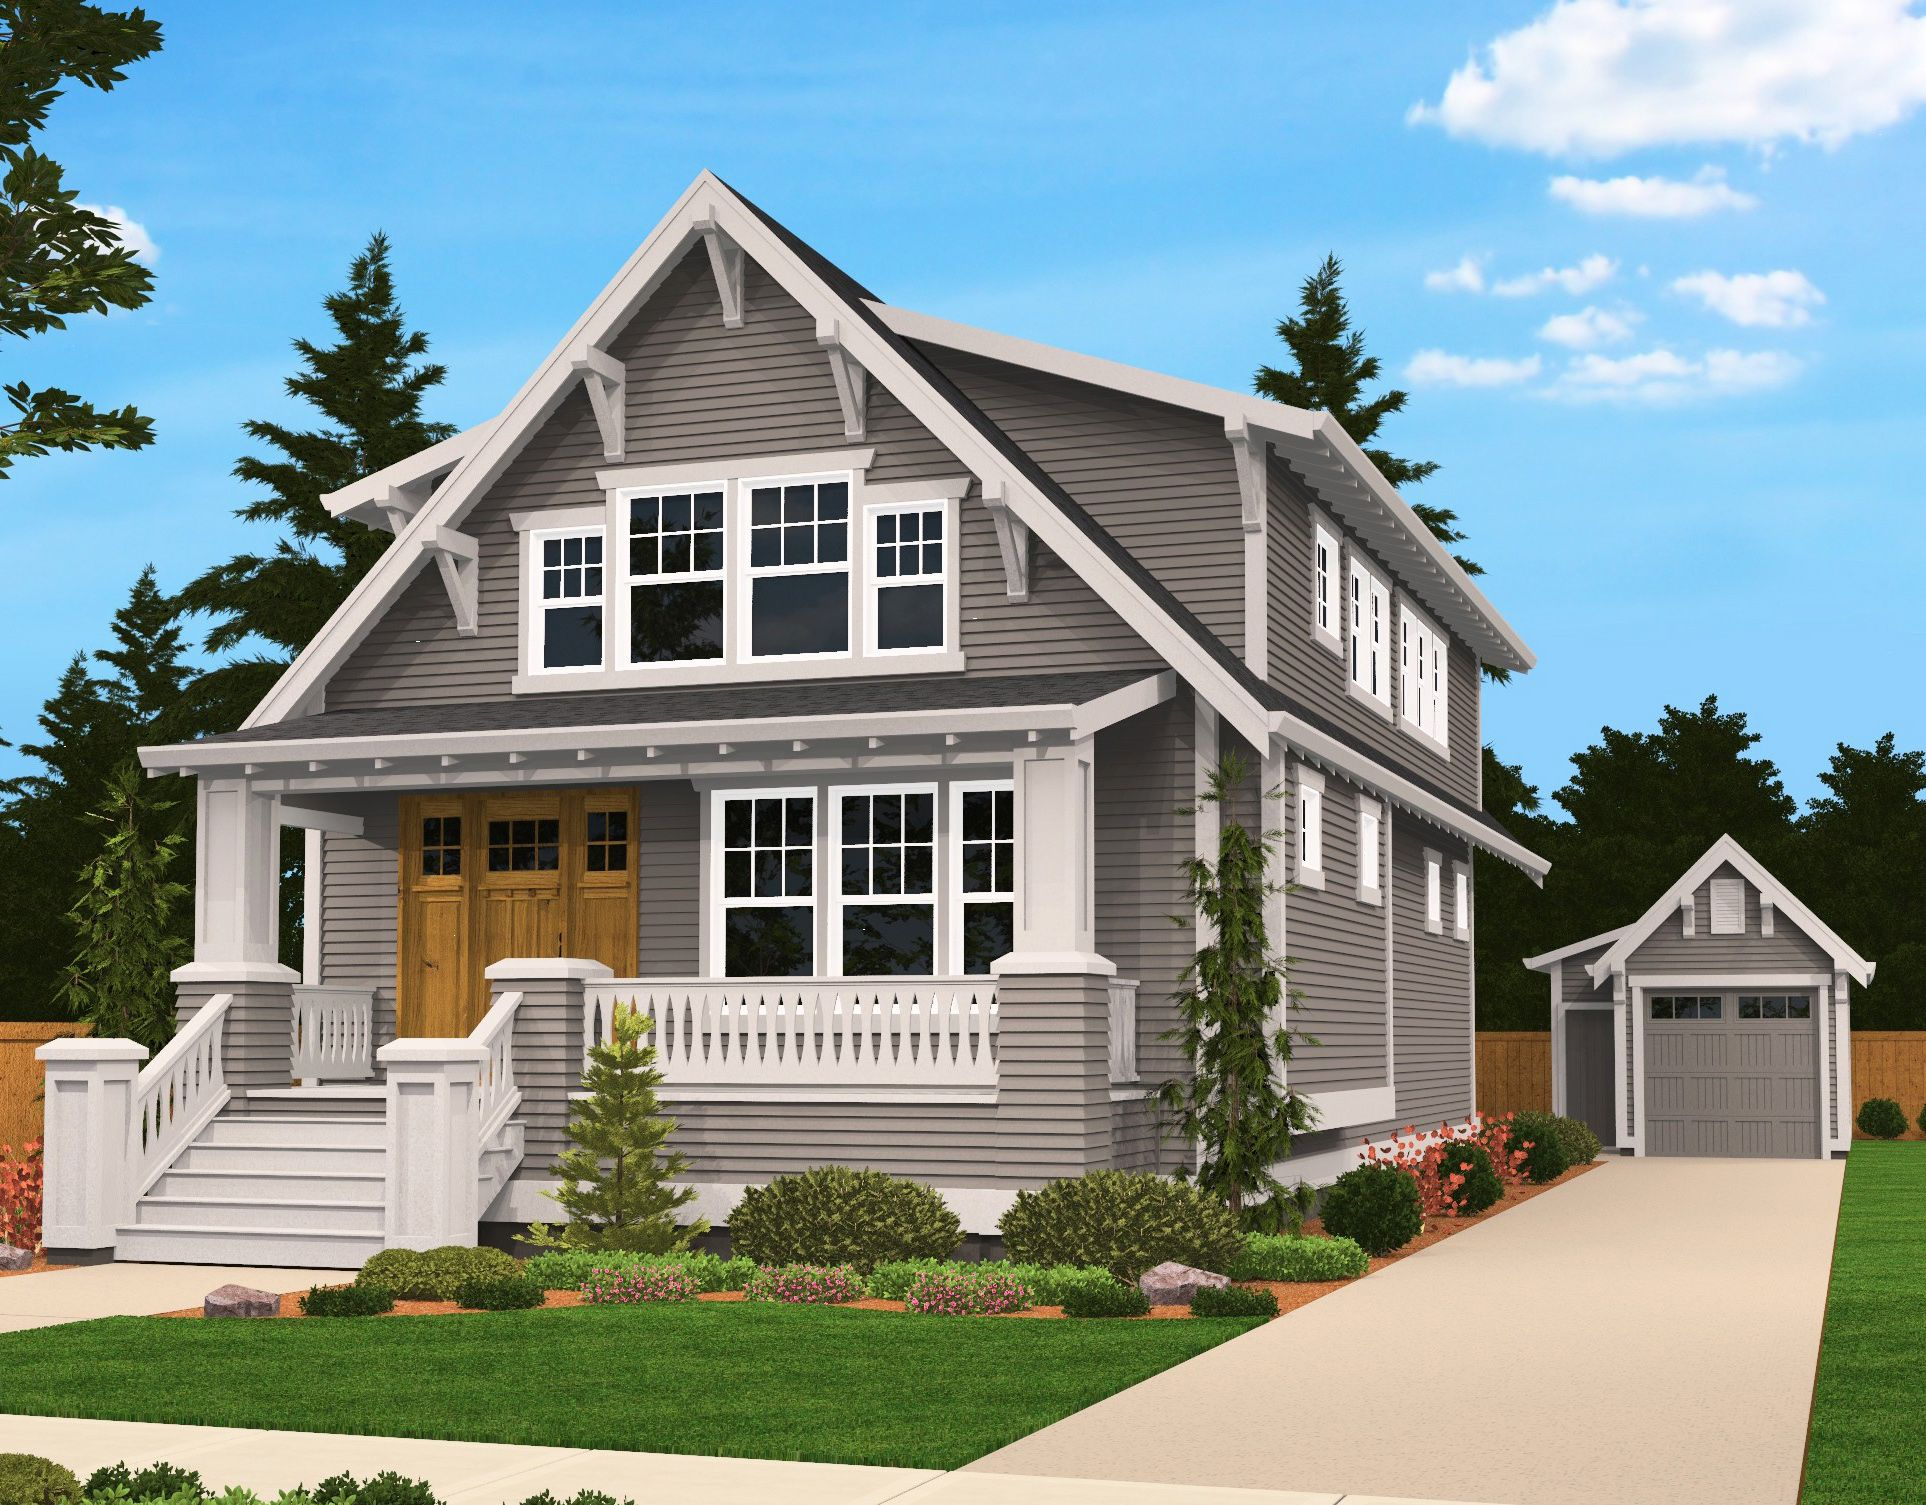 Plan 85058ms handsome bungalow house plan bungalow for Bungalow house blueprints